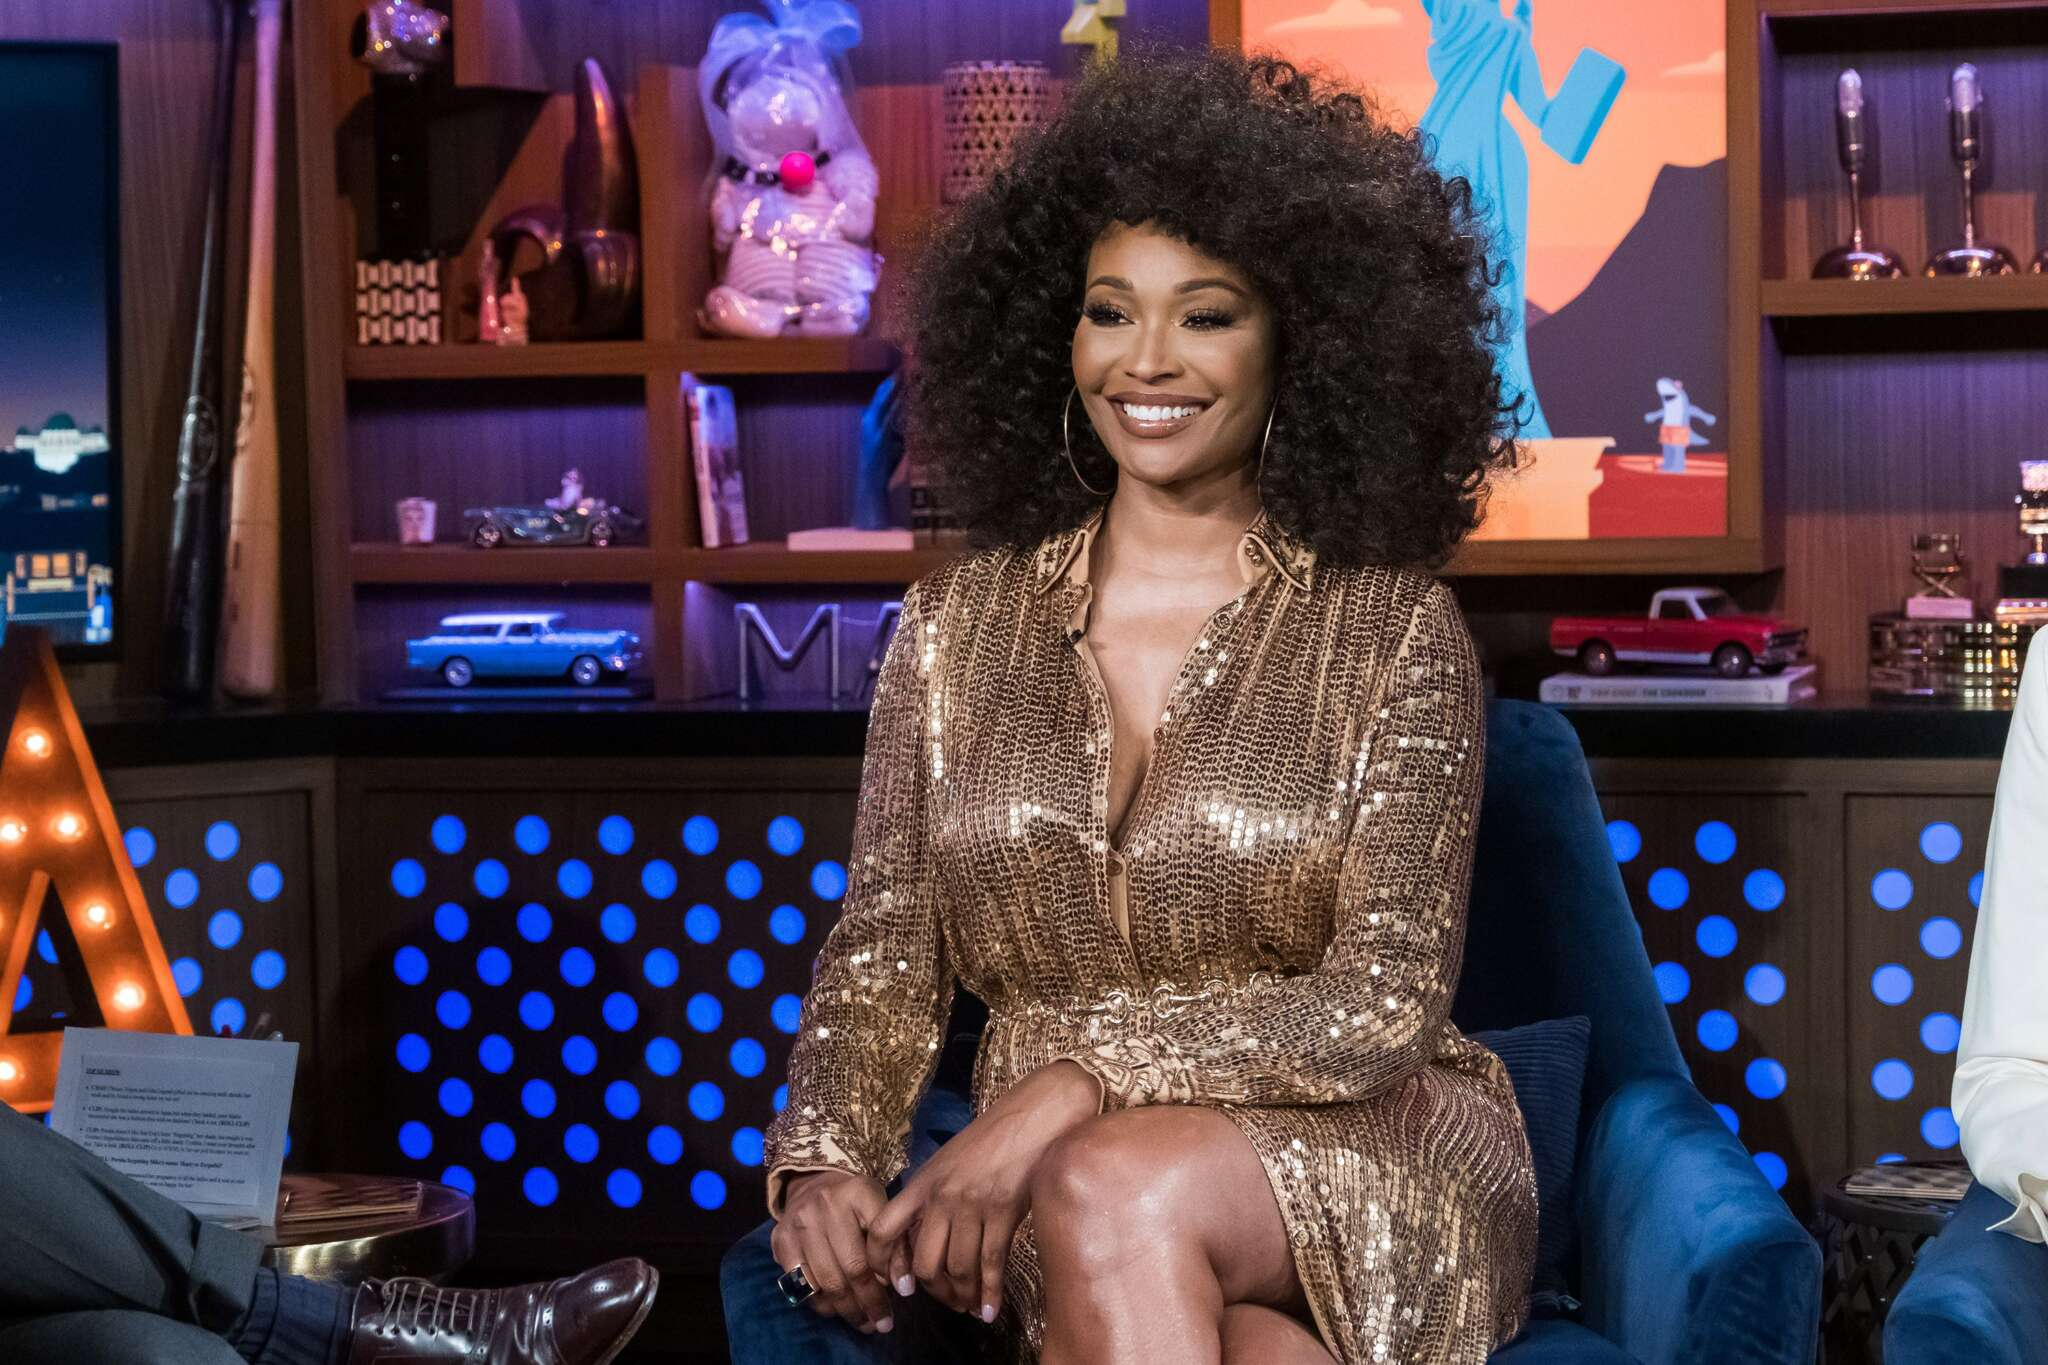 cynthia-bailey-looks-gorgeous-in-this-golden-outfit-see-her-latest-pics